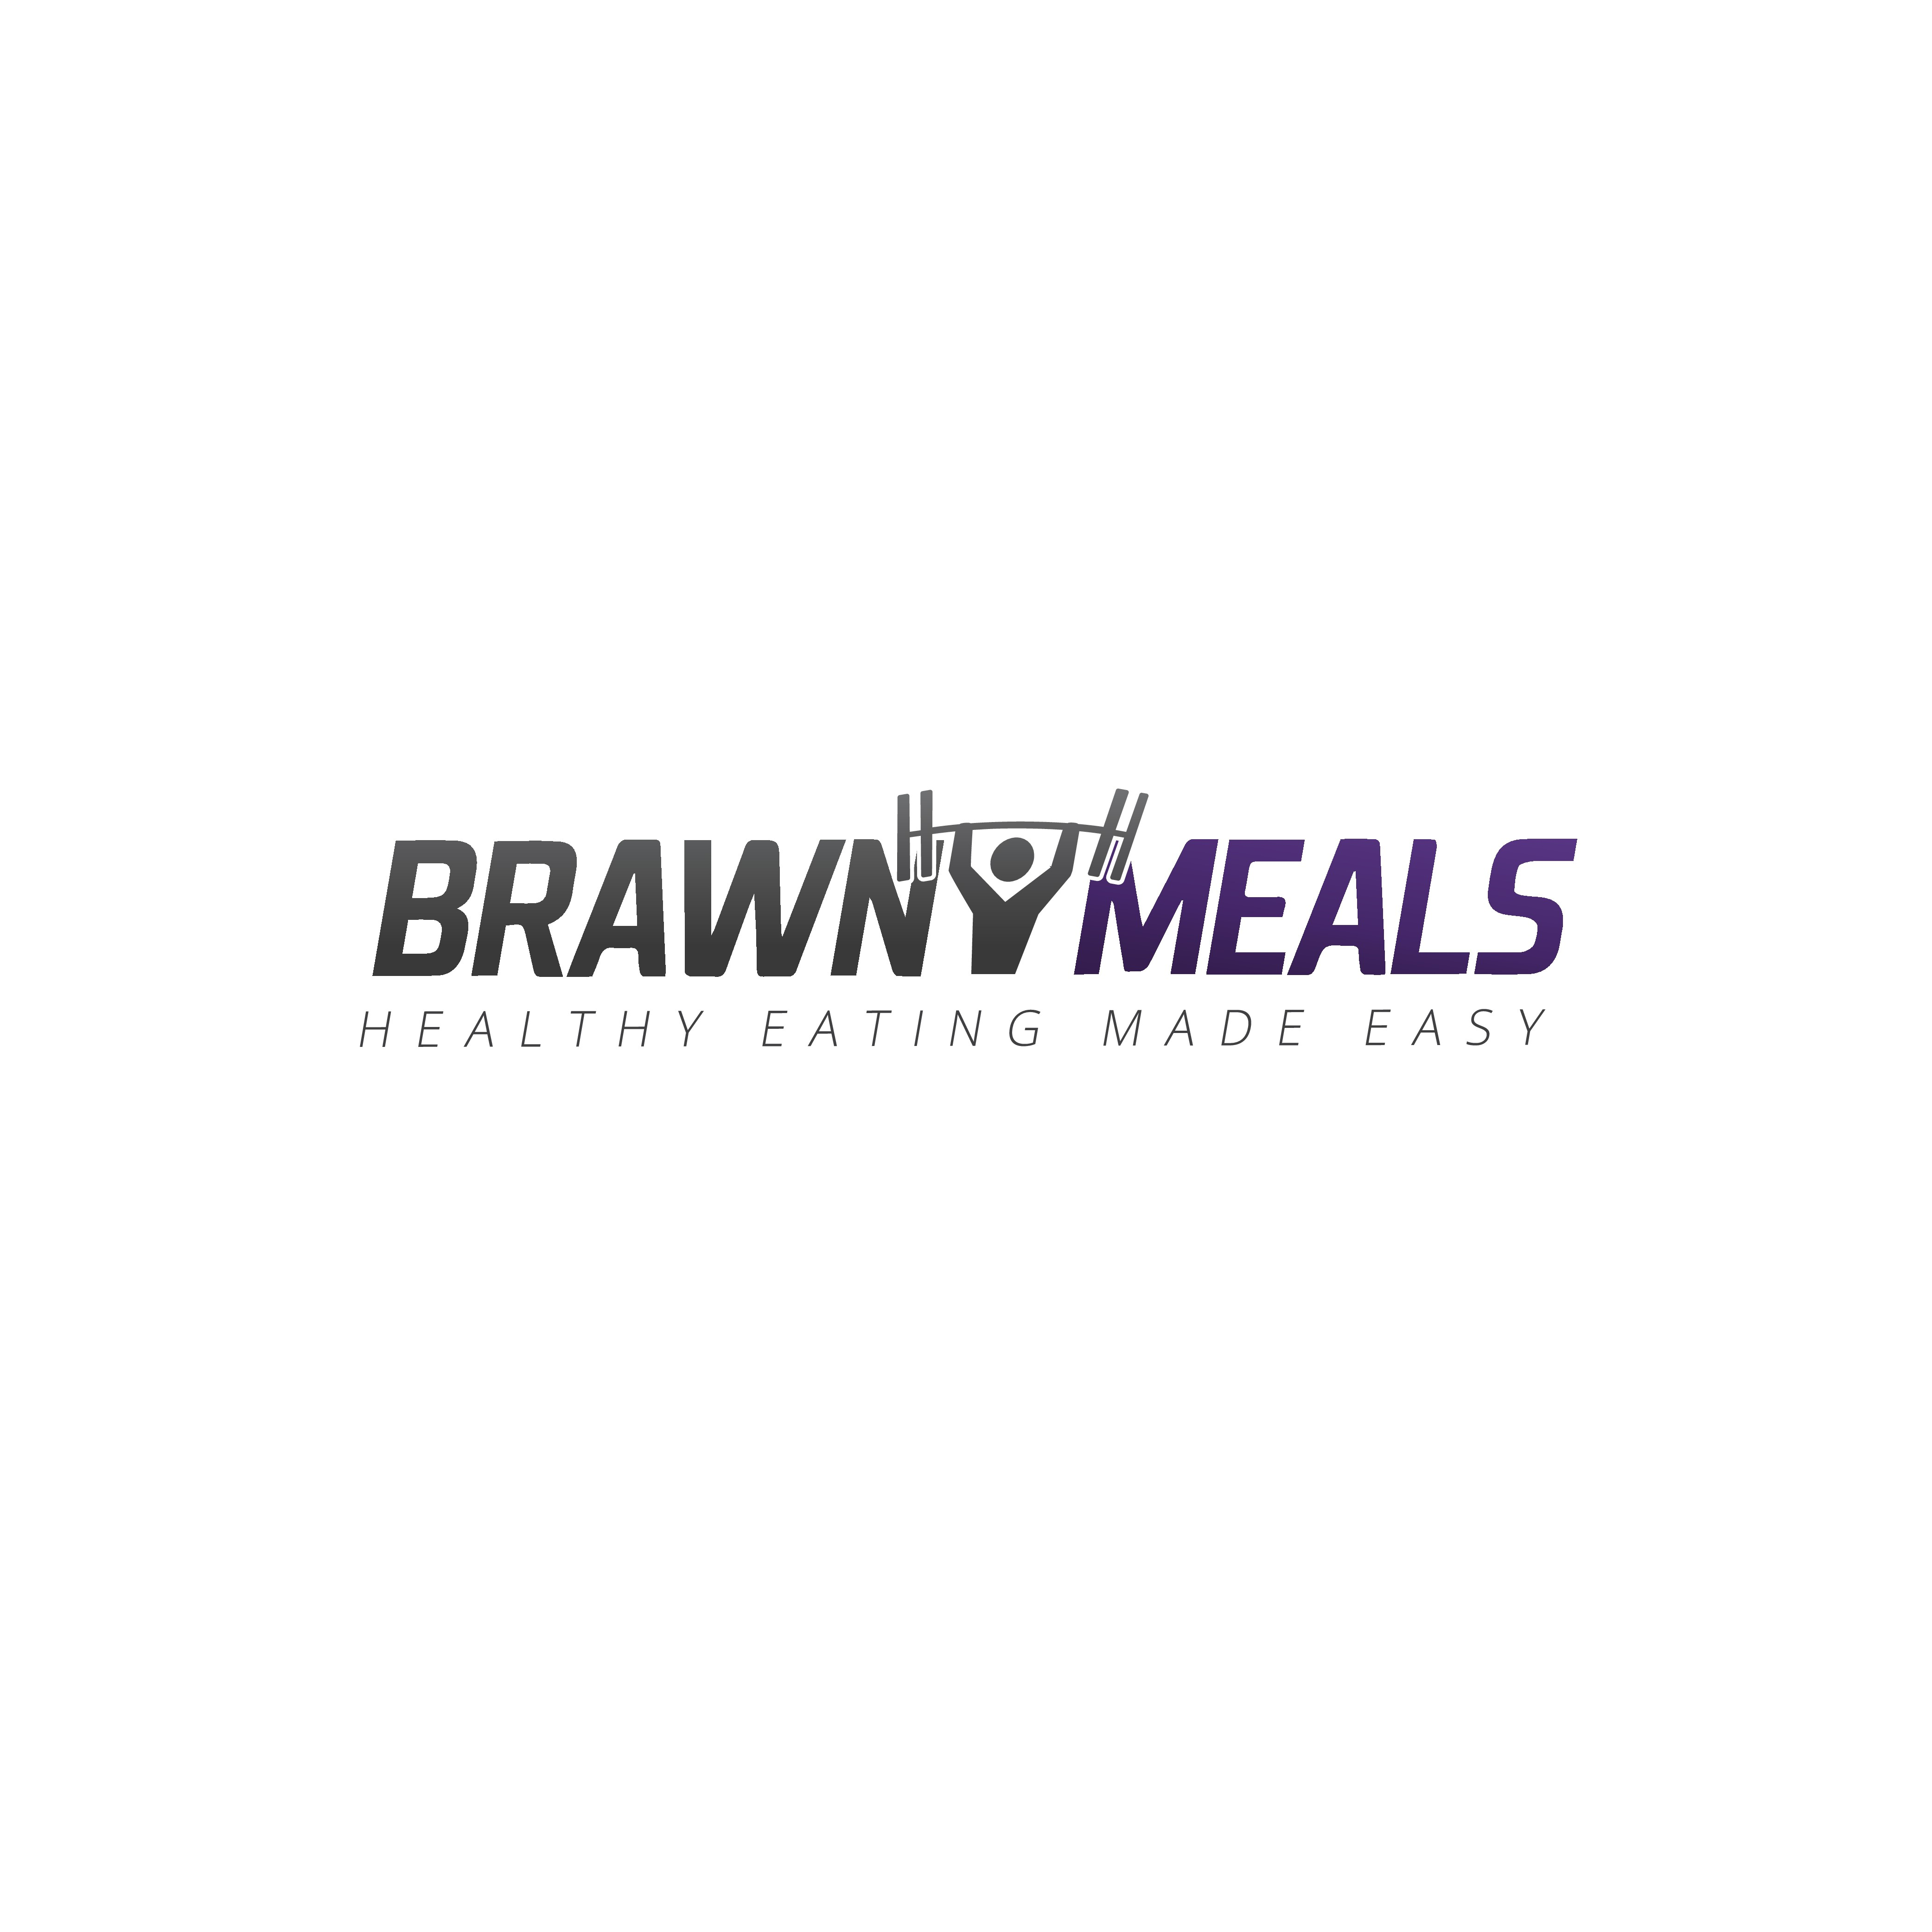 Create a cool logo for a meal delivery services aimed at busy bodybuilders and sports enthusiasts